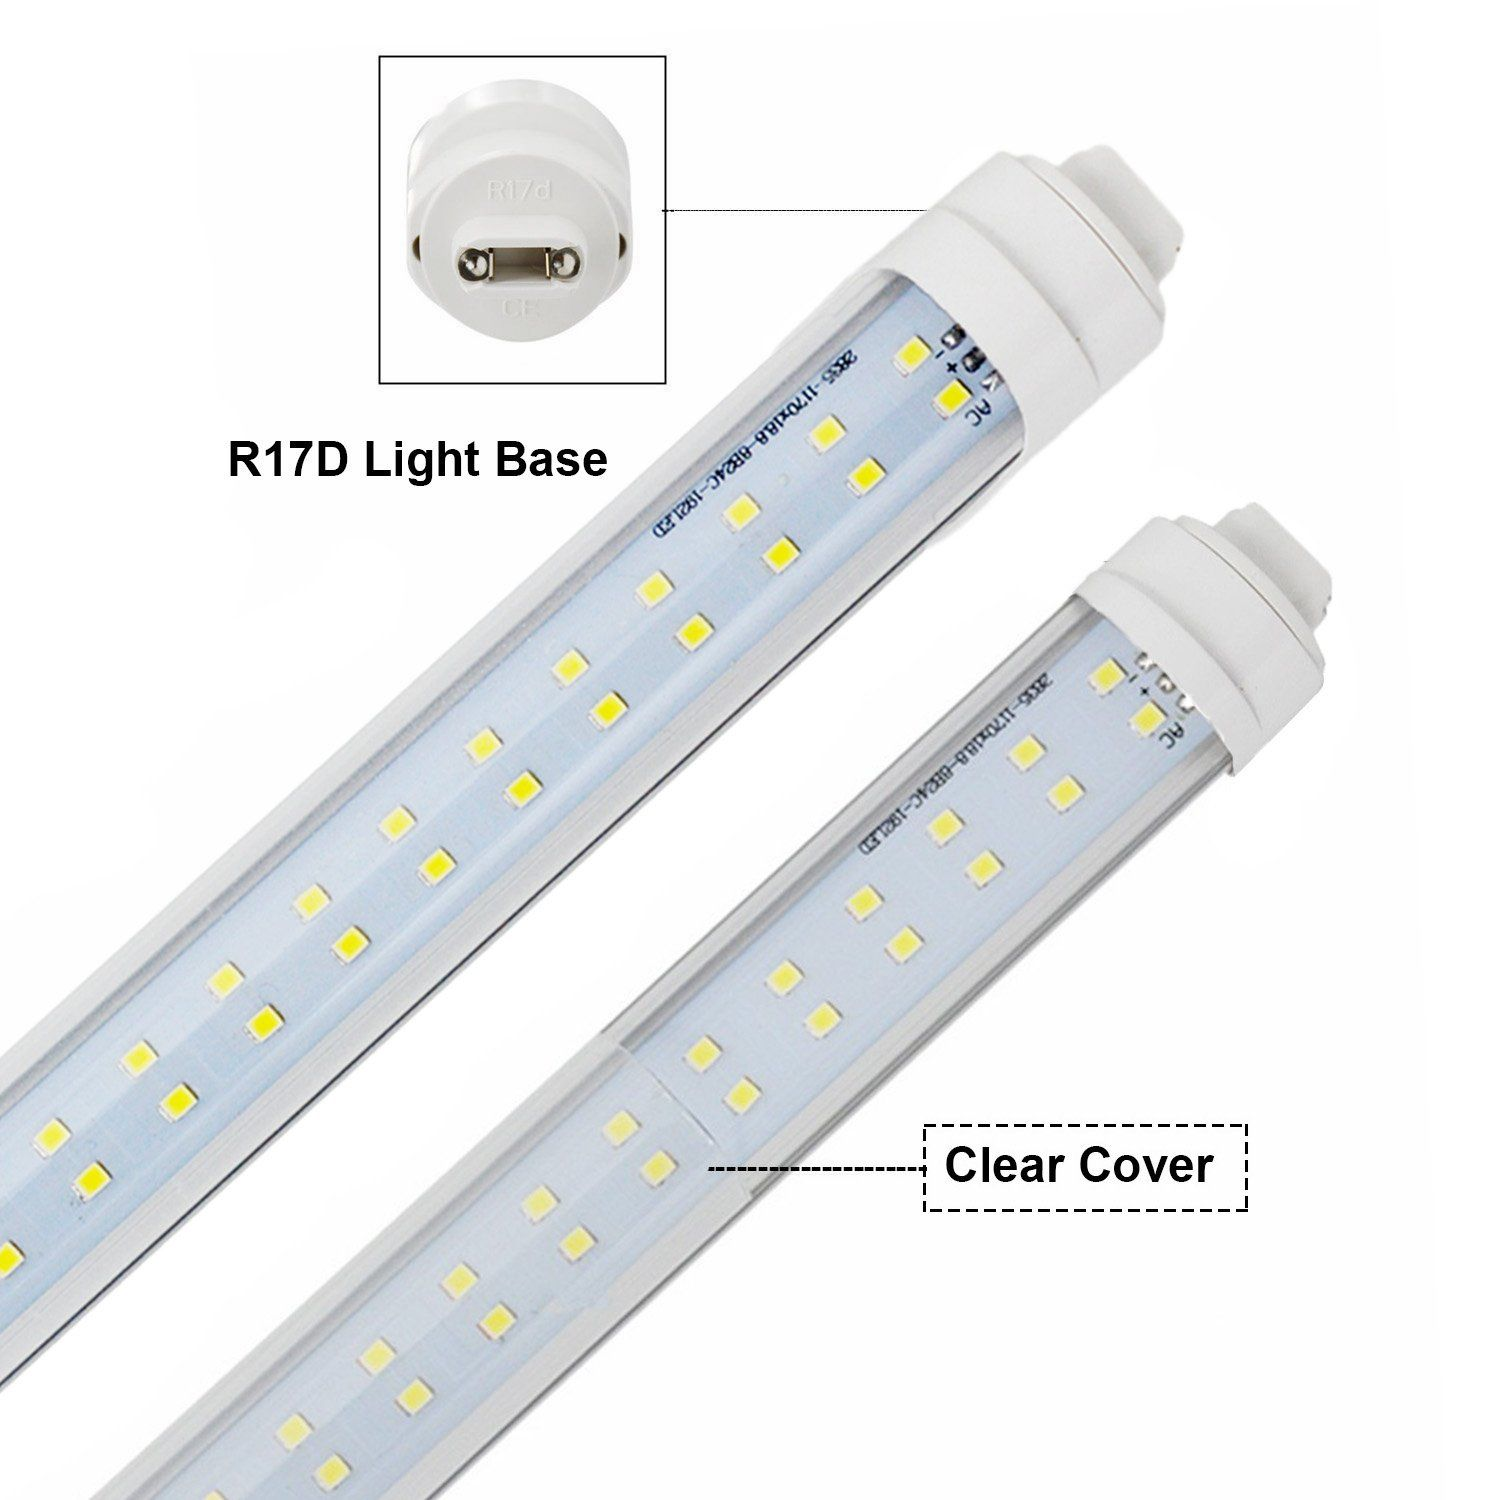 JESLED T8/T10/T12 R17D/HO 8FT LED Tube Light 72W 7200LM